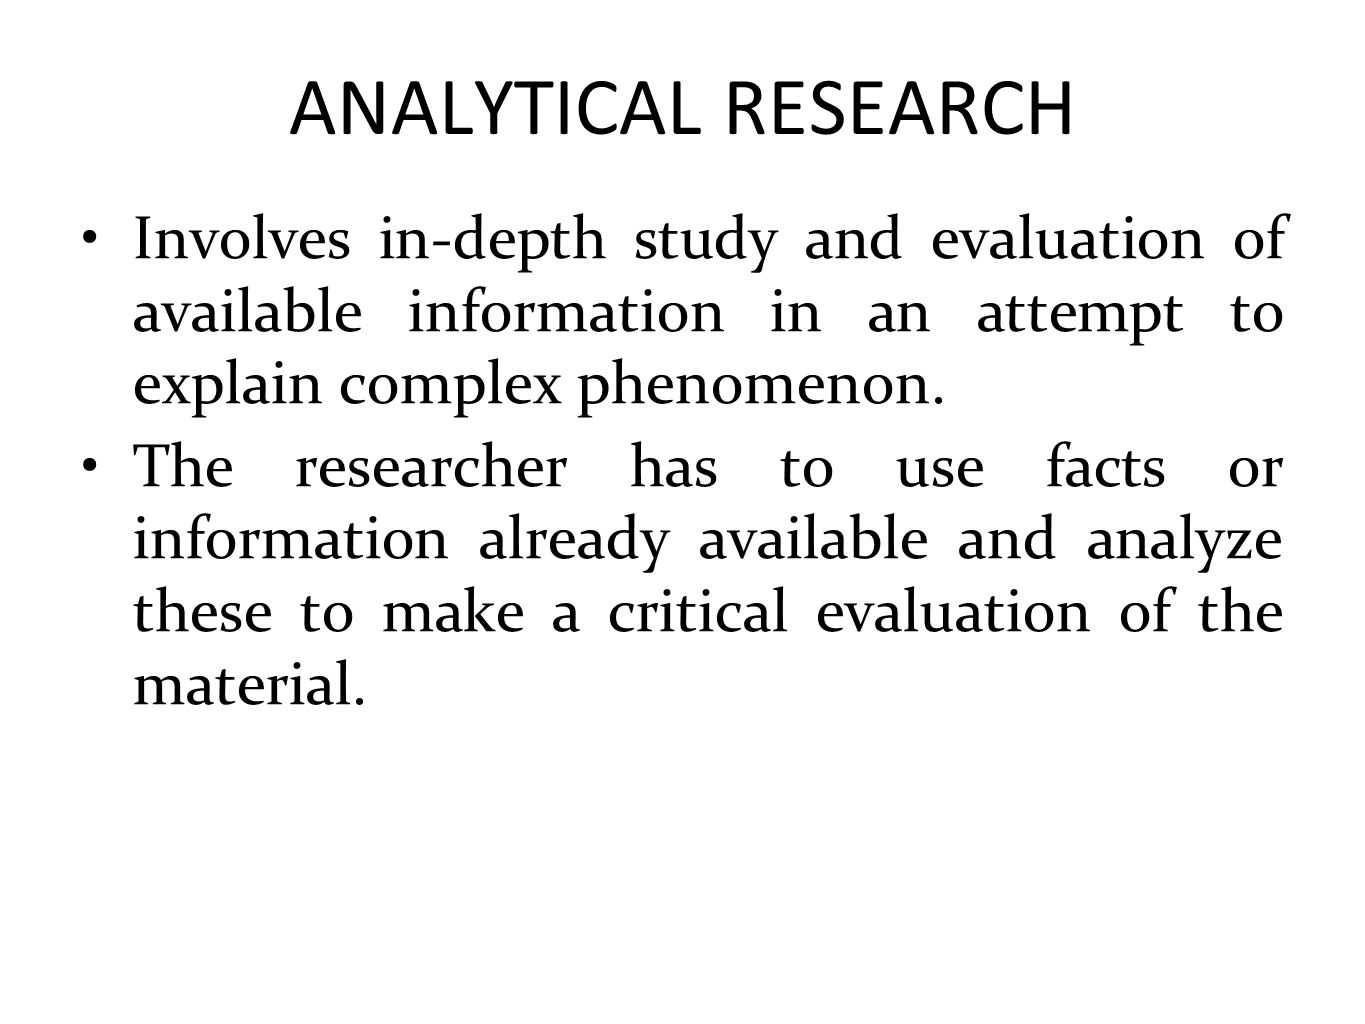 ANALYTICAL RESEARCH Involves in-depth study and evaluation of available information in an attempt to explain complex phenomenon.